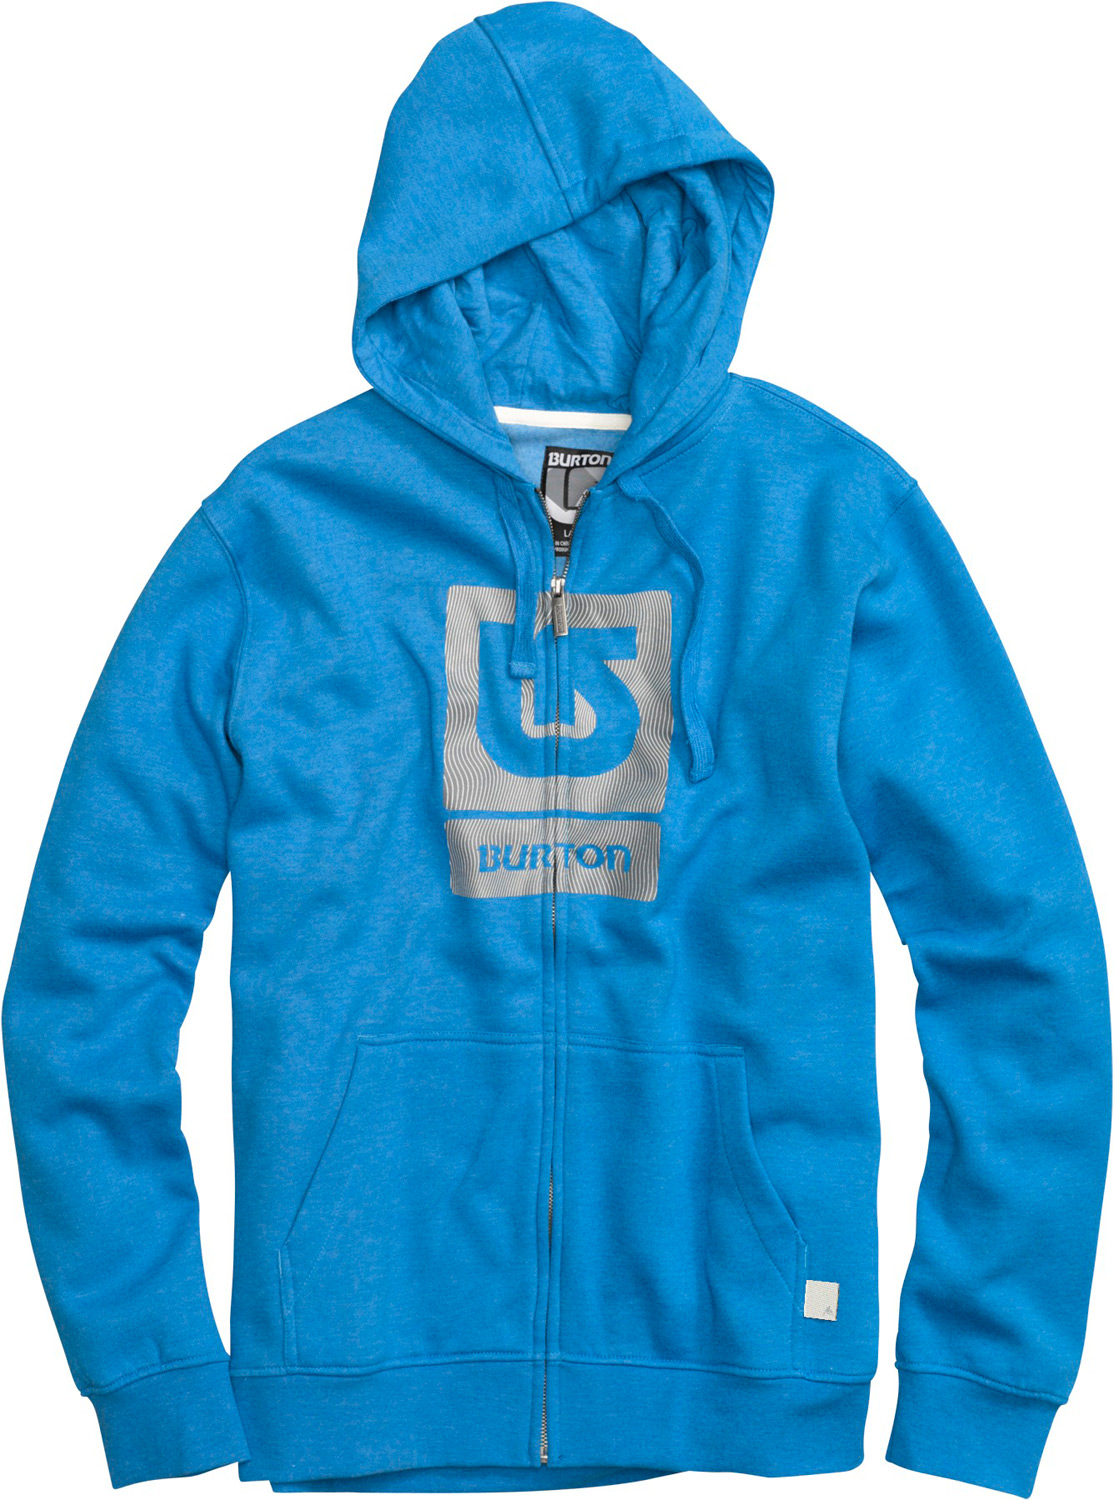 Snowboard Key Features of the Burton Logo Fill Fullzip Hoodie: 80% Cotton, 20% Polyester, 300G Fleece Kangaroo Pocket with Interior Media Stash Screen Print on Chest Regular Fit - $35.95